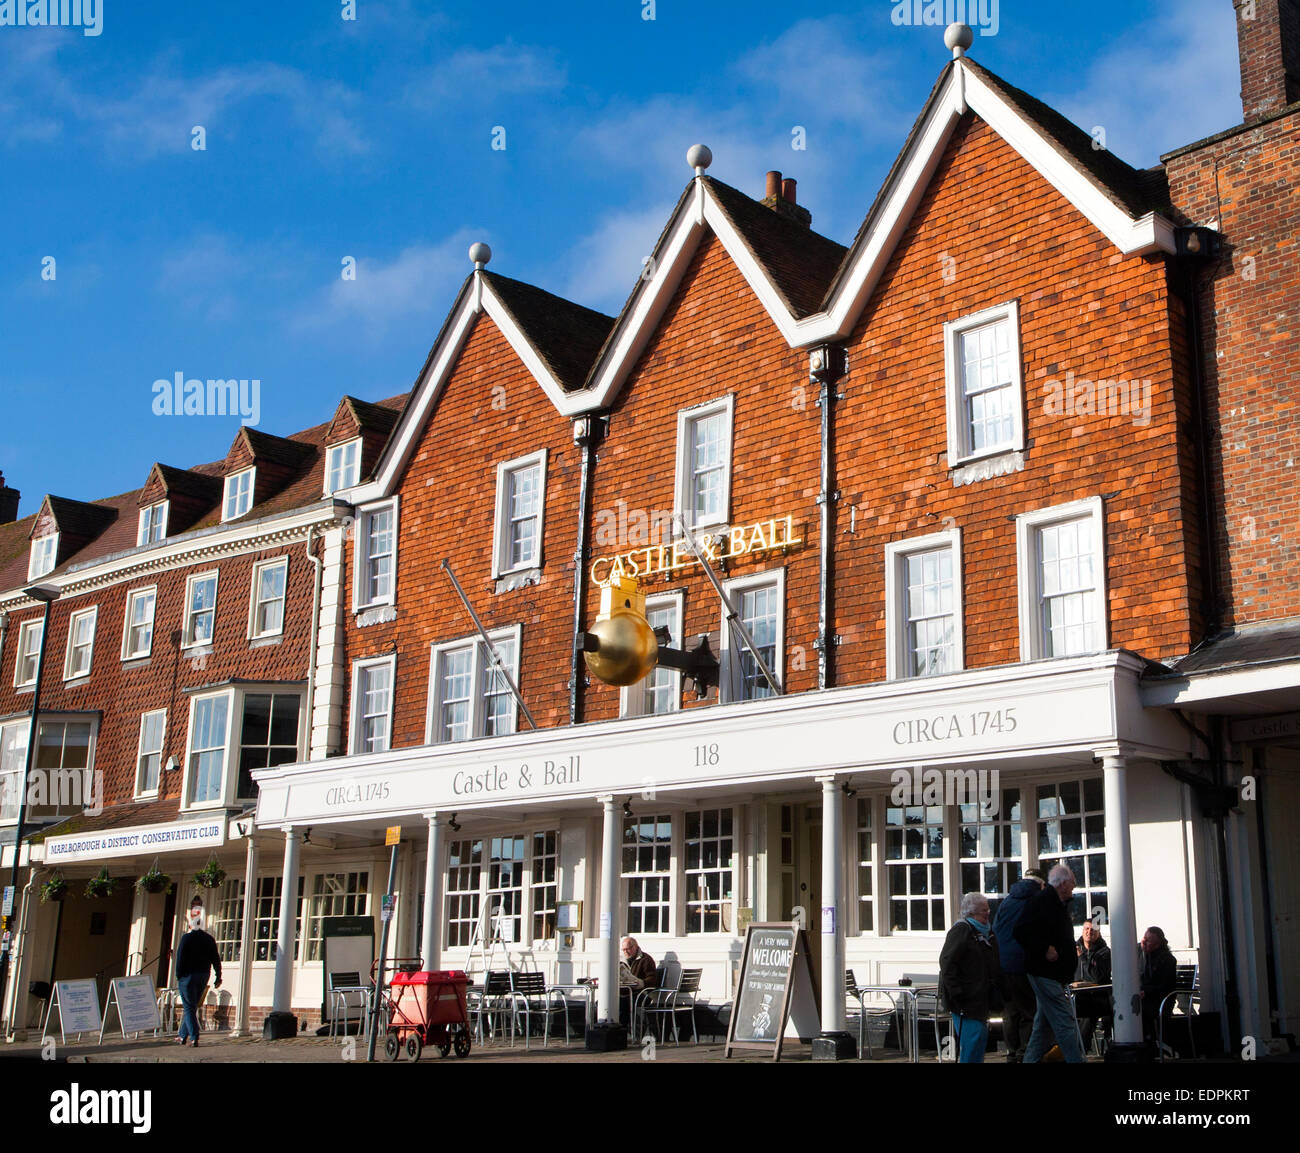 Castle and Ball pub in historic building on the High Street, Marlborough, Wiltshire, England, UK - Stock Image